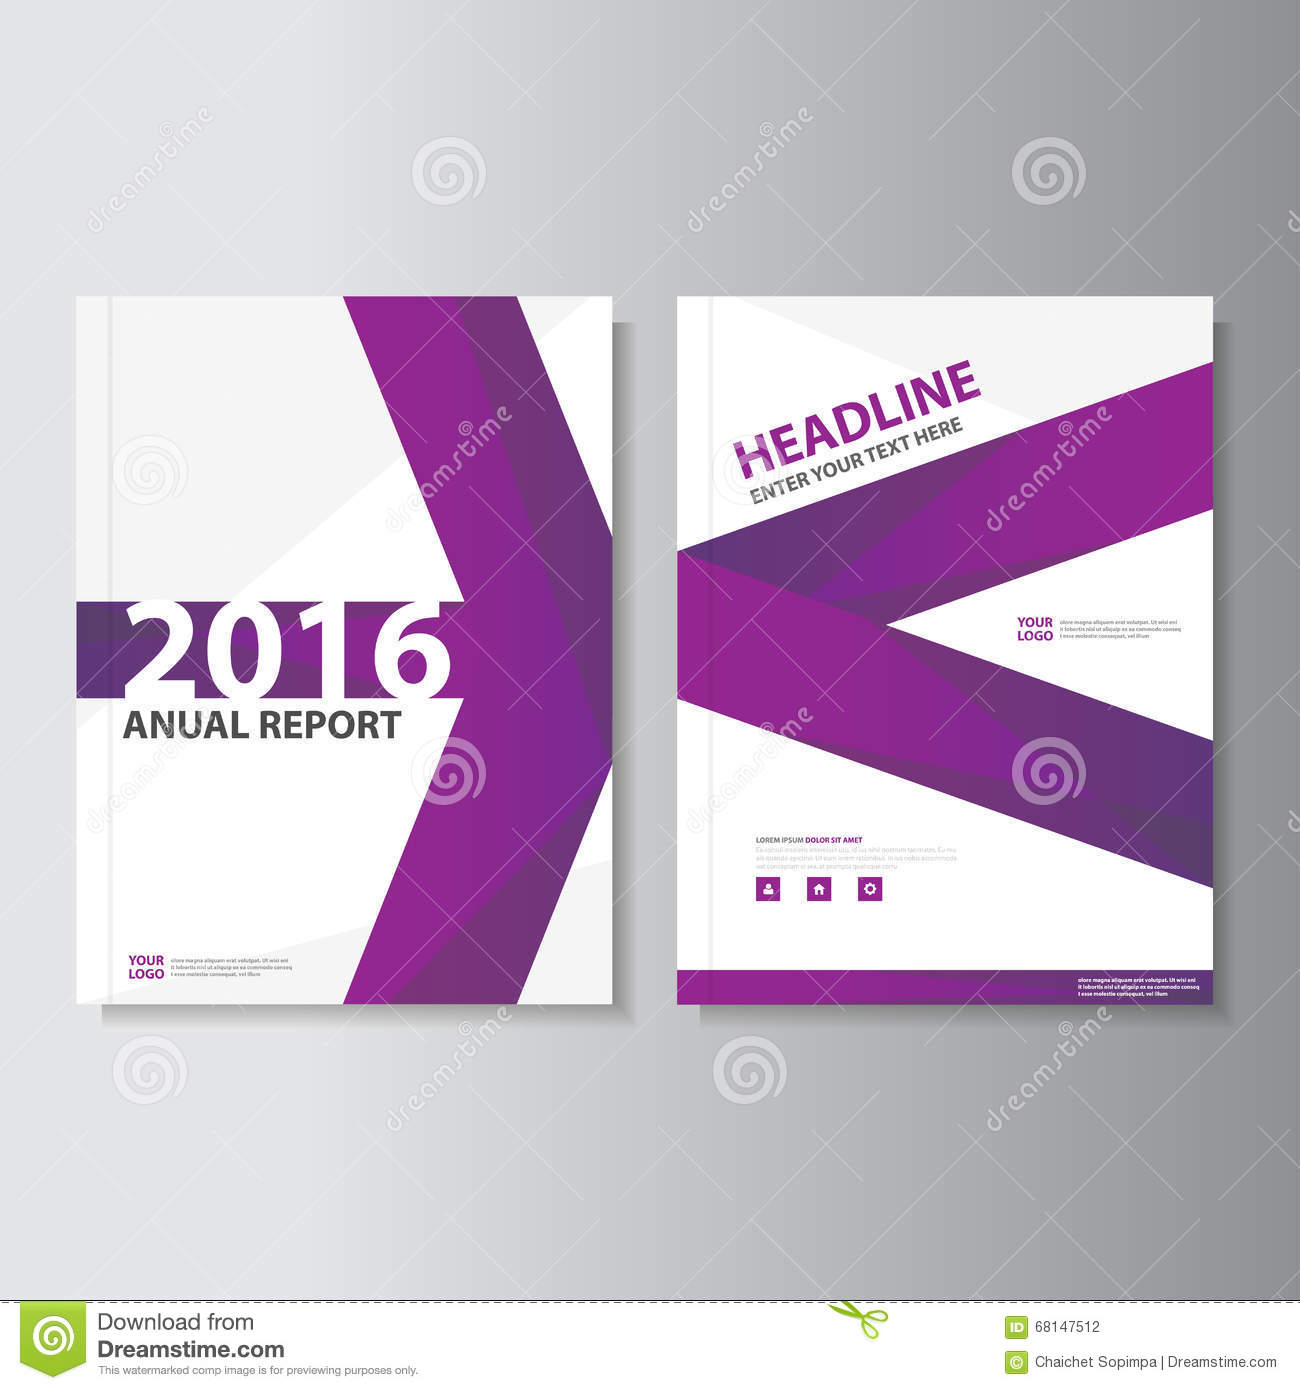 annual report design illustration cover design brochure purple vector annual report leaflet brochure flyer template design book cover layout design abstract